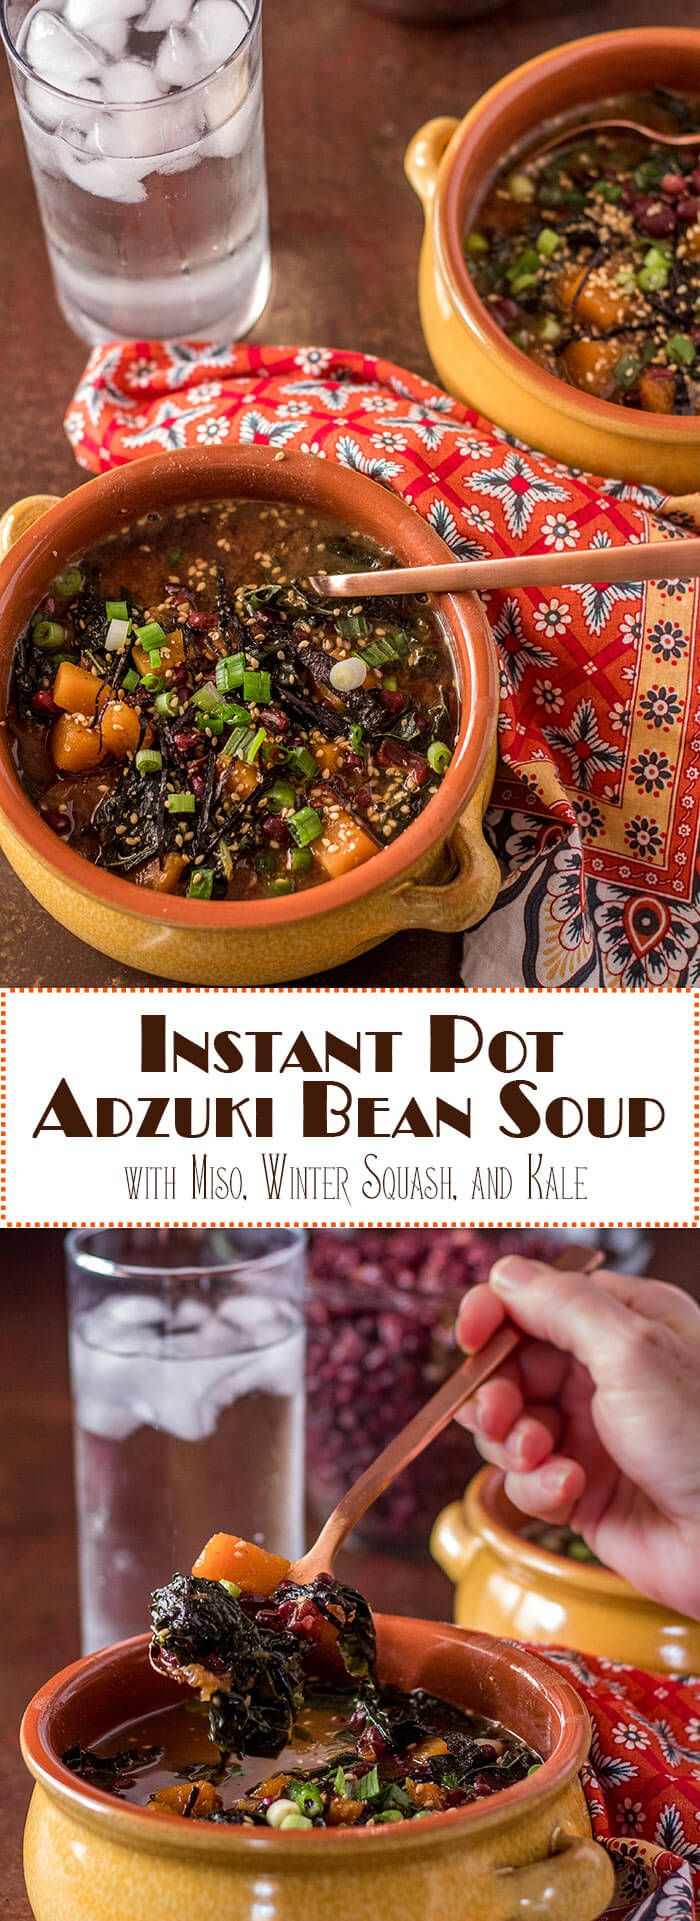 Adzuki beans are not just for sweet Asian-inspired treats!Instant Pot Adzuki Bean Soup with Miso, Winter Squash, and Kale combines nutrient-rich adzuki beans with a Japanese-style miso broth and hearty fiber-rich vegetables in a soul-warming vegan and gluten free soup...Bob's Red Mill | Instant Pot Recipes | Vegan Soups | Adzuki Beans | Vegetarian | Gluten Free via @TamaraBMS